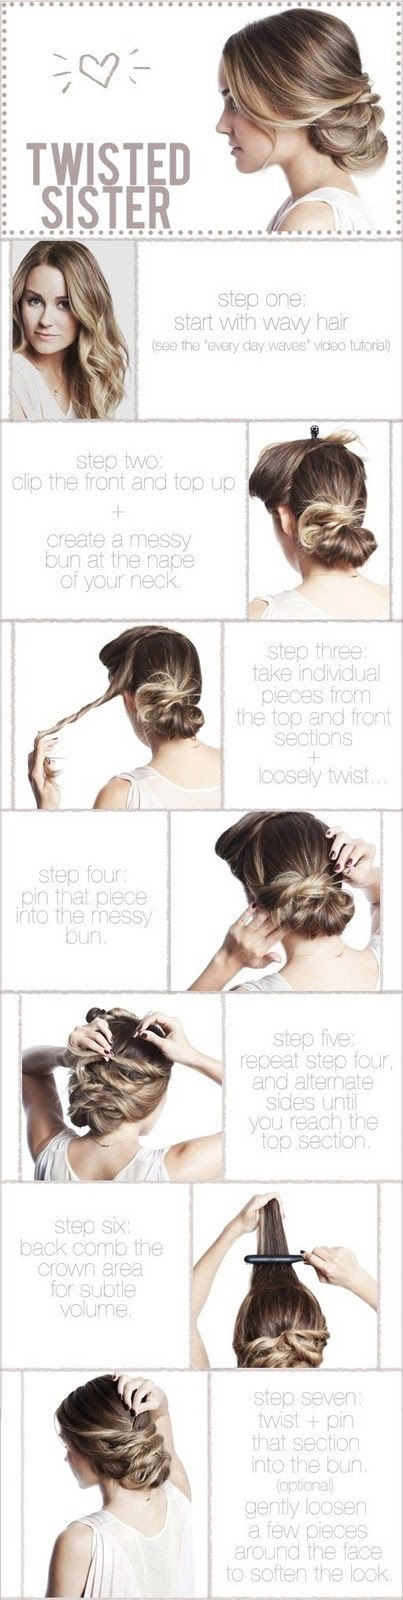 Boho twisted updo hairstyle tutorial